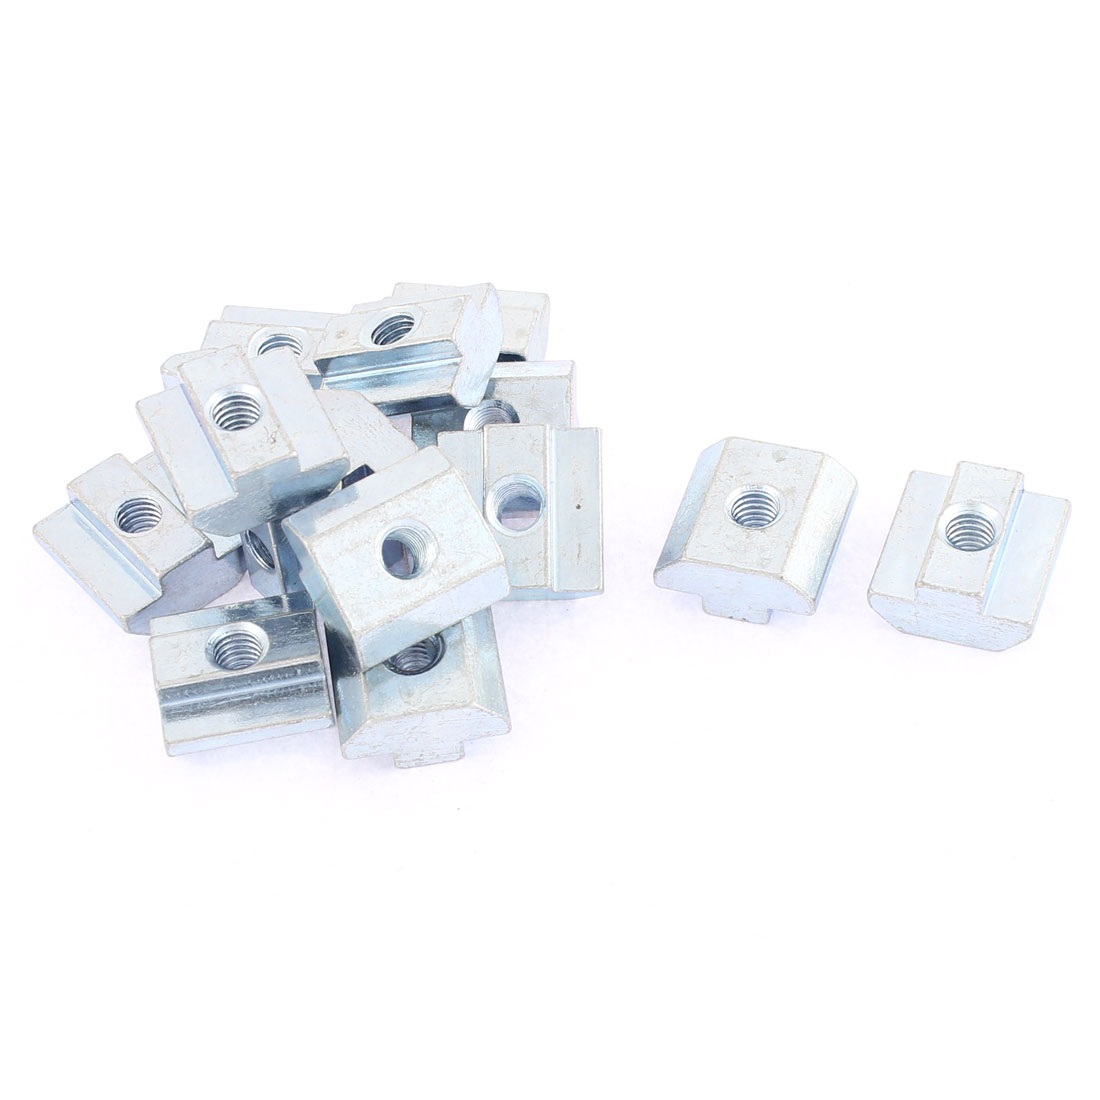 M6 Metal T-slot Nut Sliding Block Slot Nuts Silver Tone 15pcs